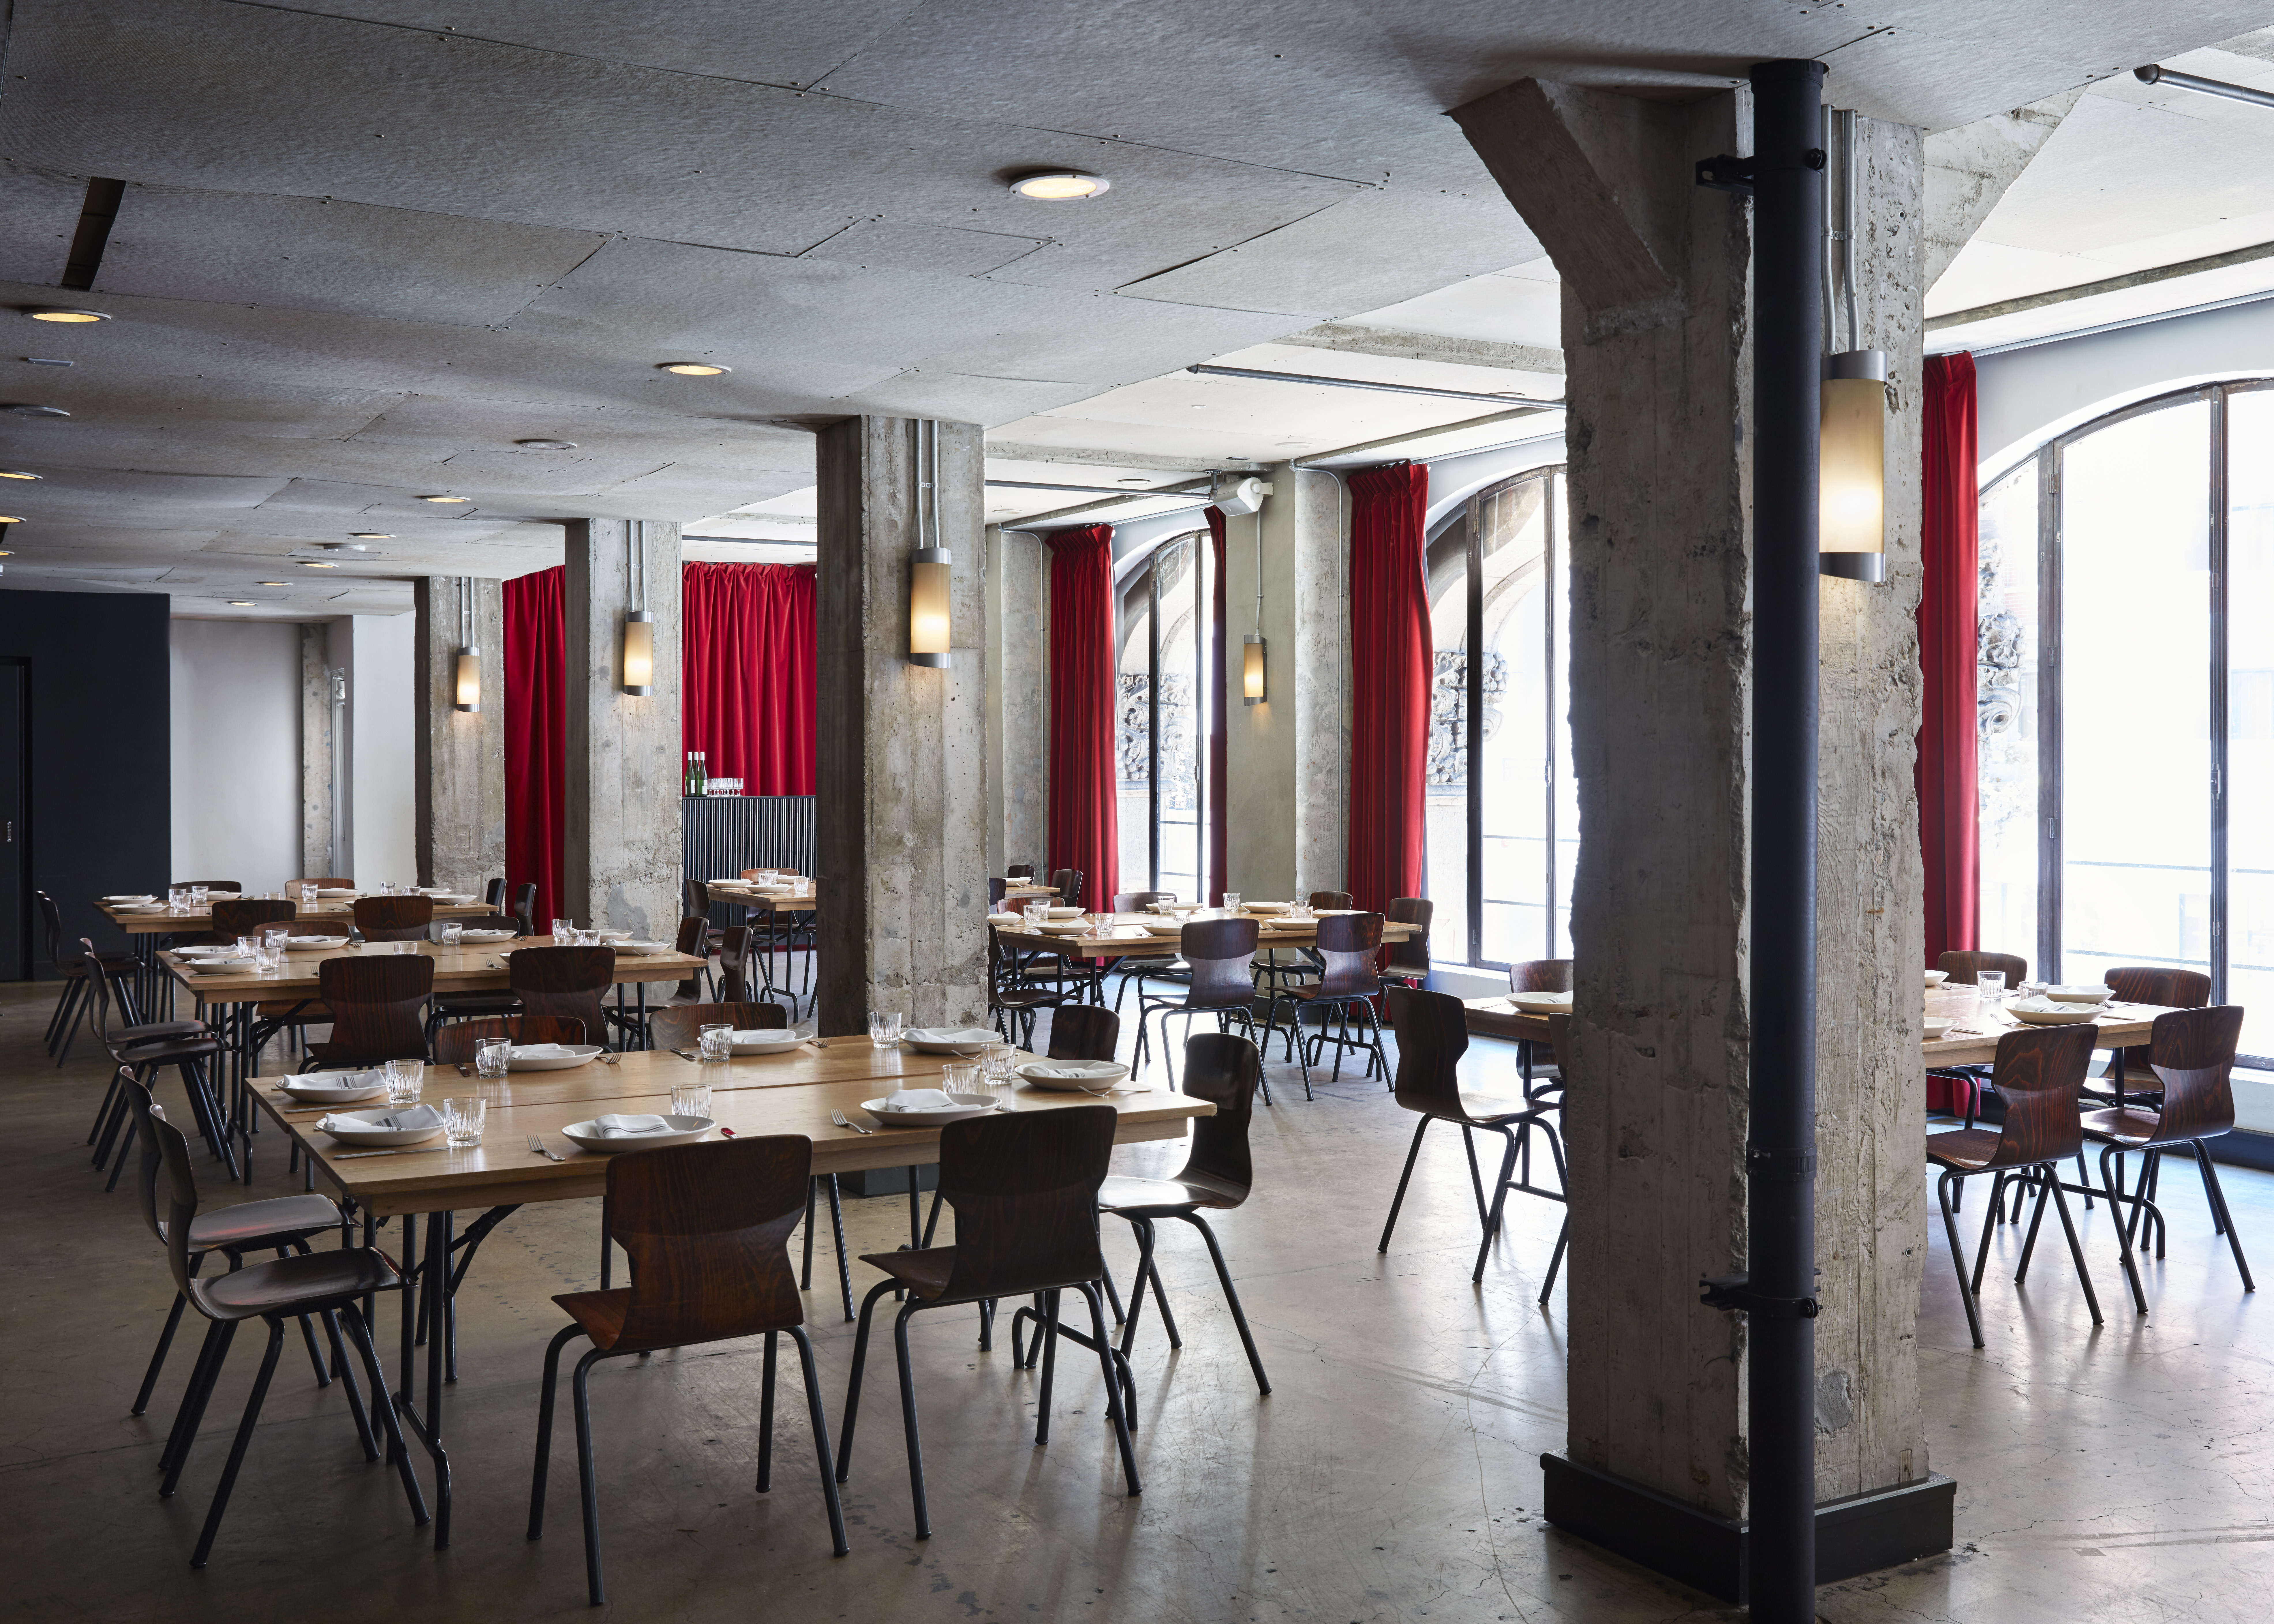 Restaurant with large tables, cement beams and red drapes